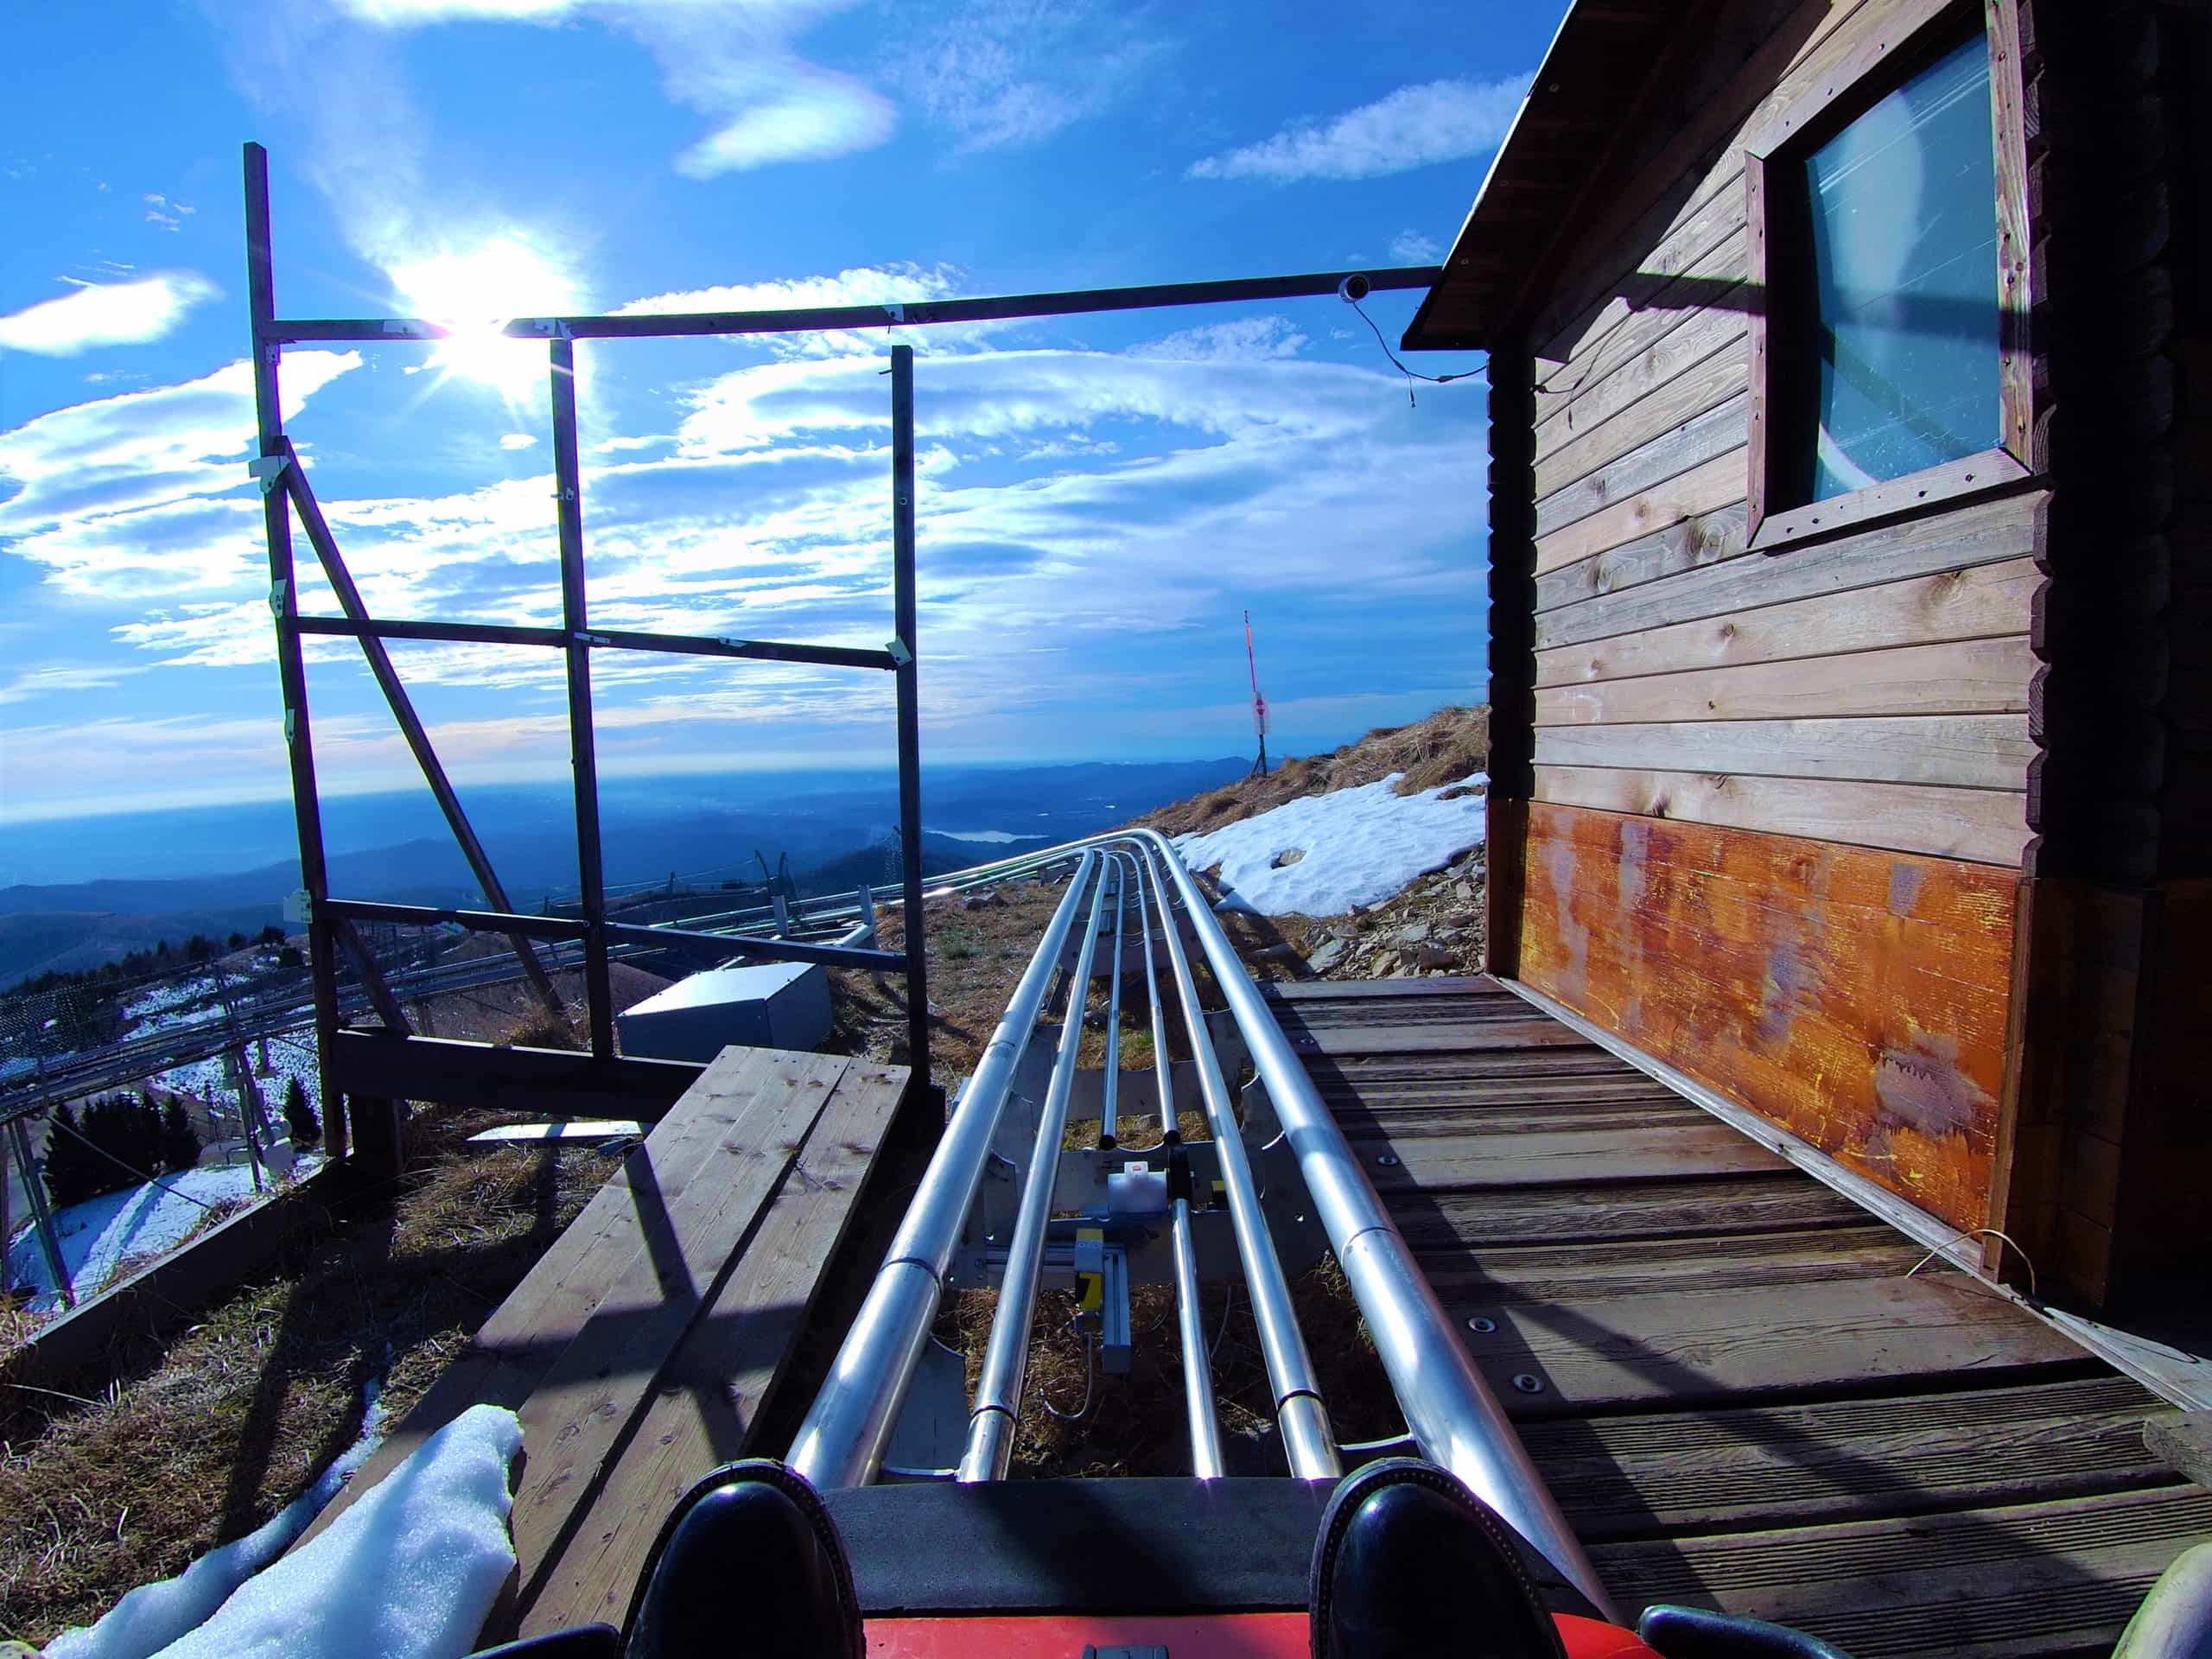 Italy Stresa Lake Maggiore in winter mottarone alpyland mountain roller coaster ride view - Copia